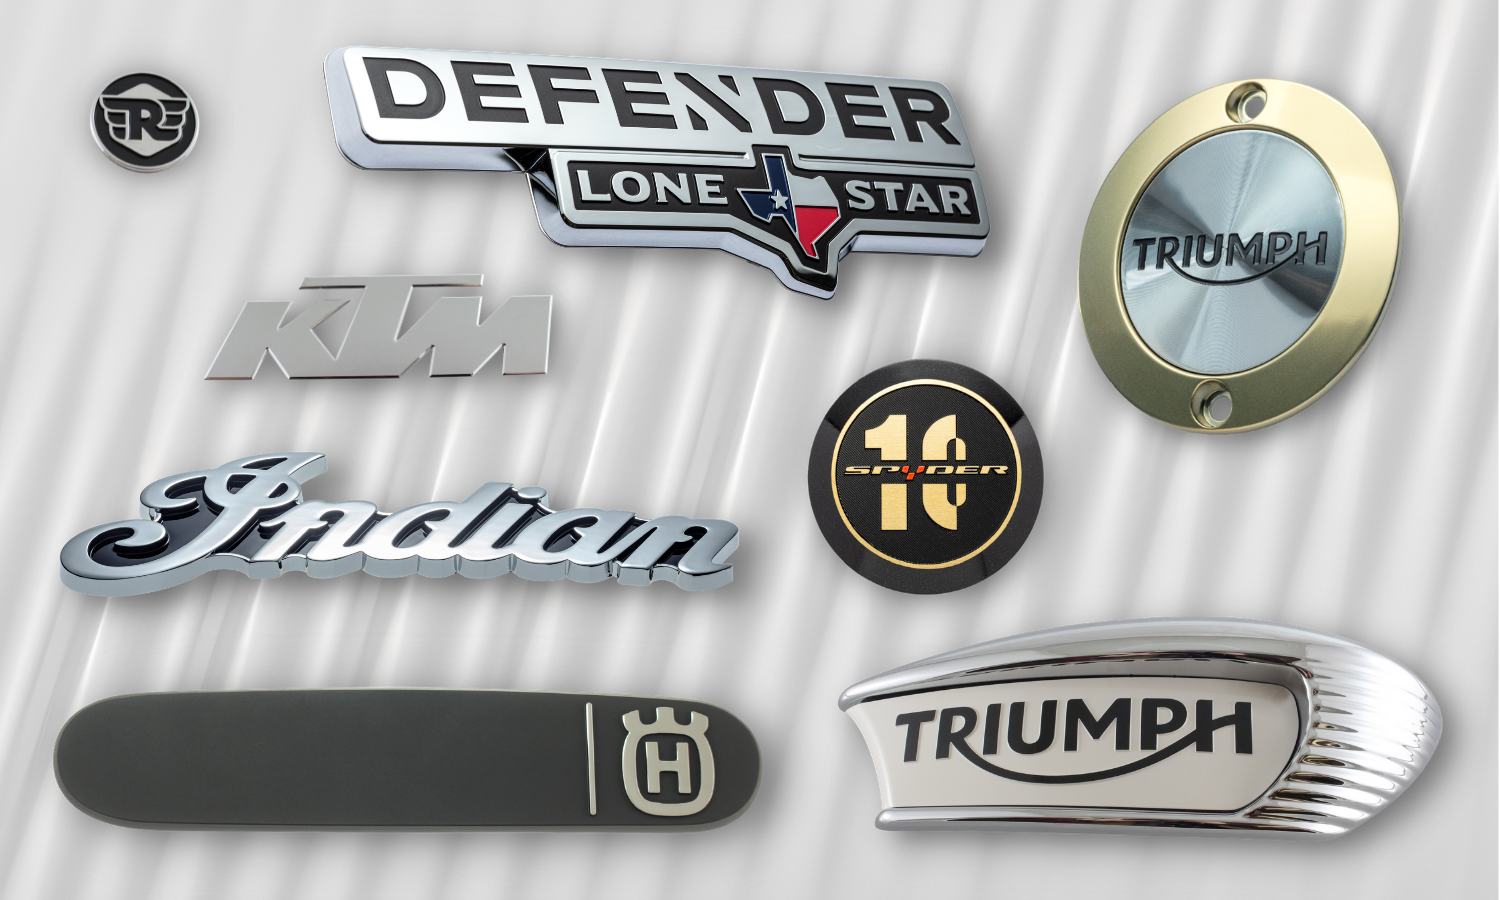 collage of parts that go on motorcycles; circle and oblong triumph motorcycle badges, chrome and black indian script badge, circle 10th anniversary black and gold spyder badge, chrome KTM badge, brushed black and chrome husqvarna trim badge, chrome and black defender lone star badge